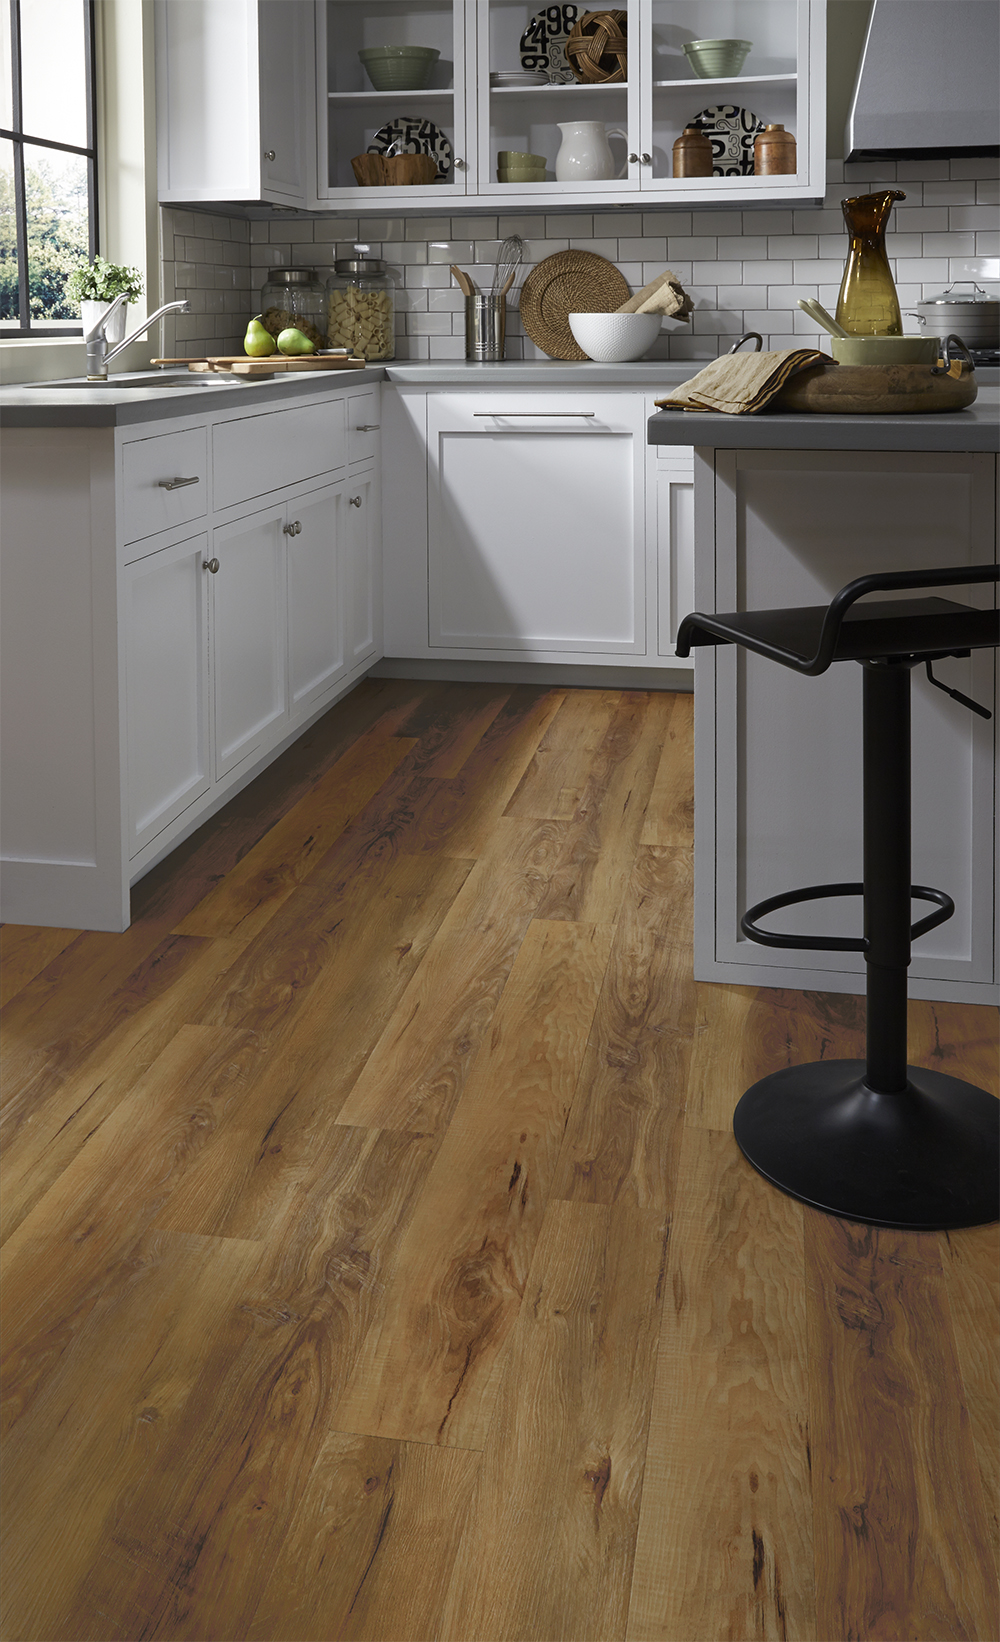 Laminated Flooring Special Characters And Specifications SHARE THIS FLOOR: